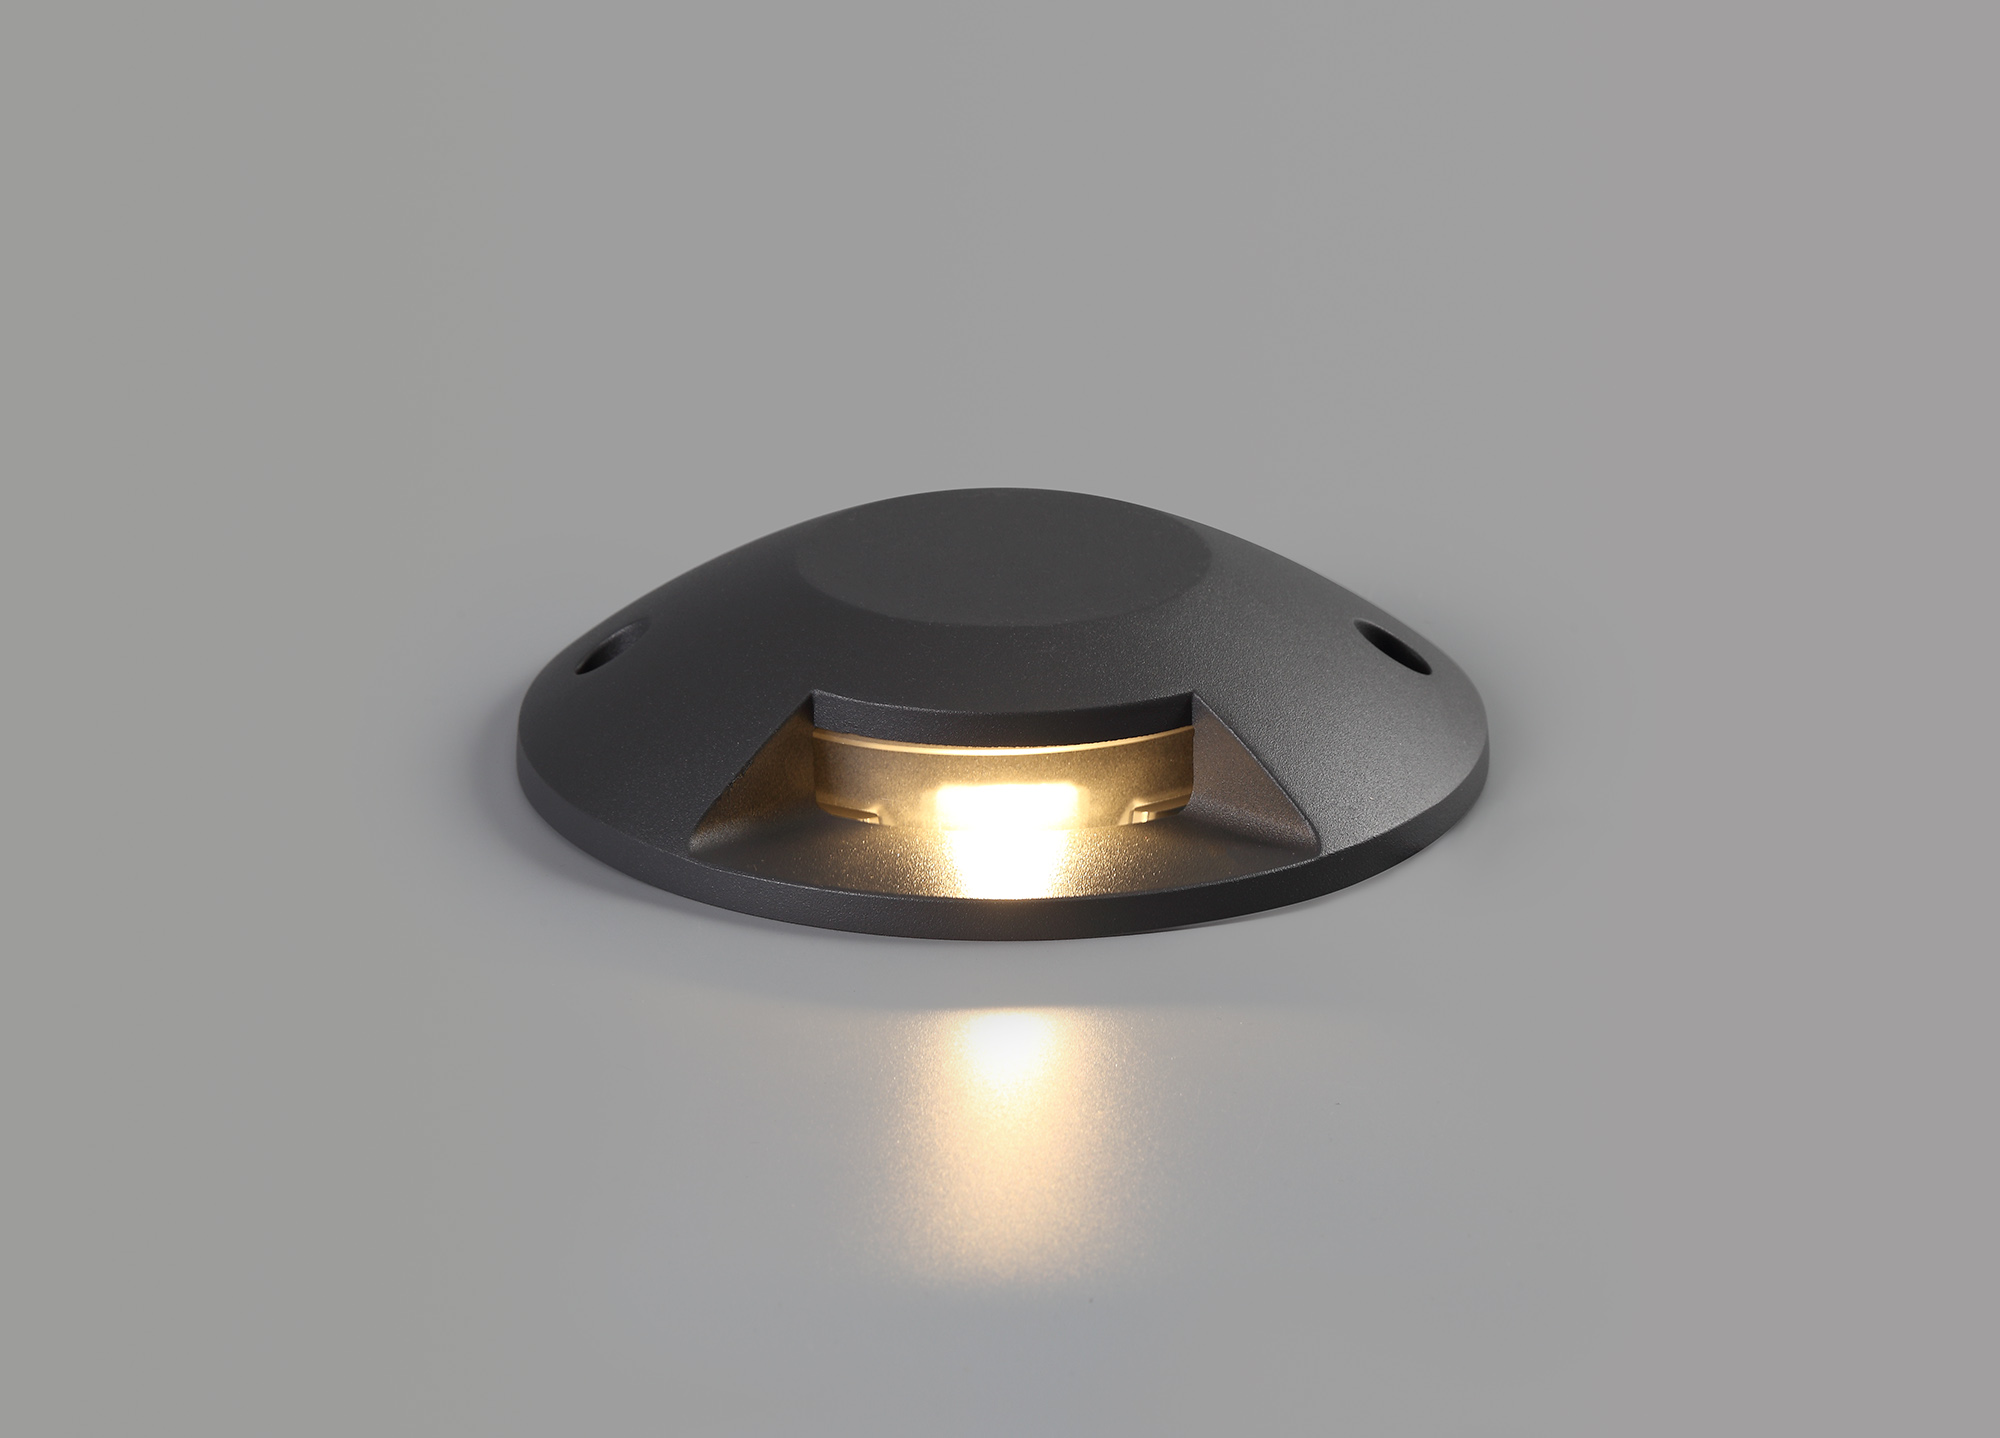 Above Ground (NO DIGGING REQUIRED) Driveover 1 Light, 1 x 6W LED, 3000K, 165lm, IP67, IK10, Anthracite, 3yrs Warranty